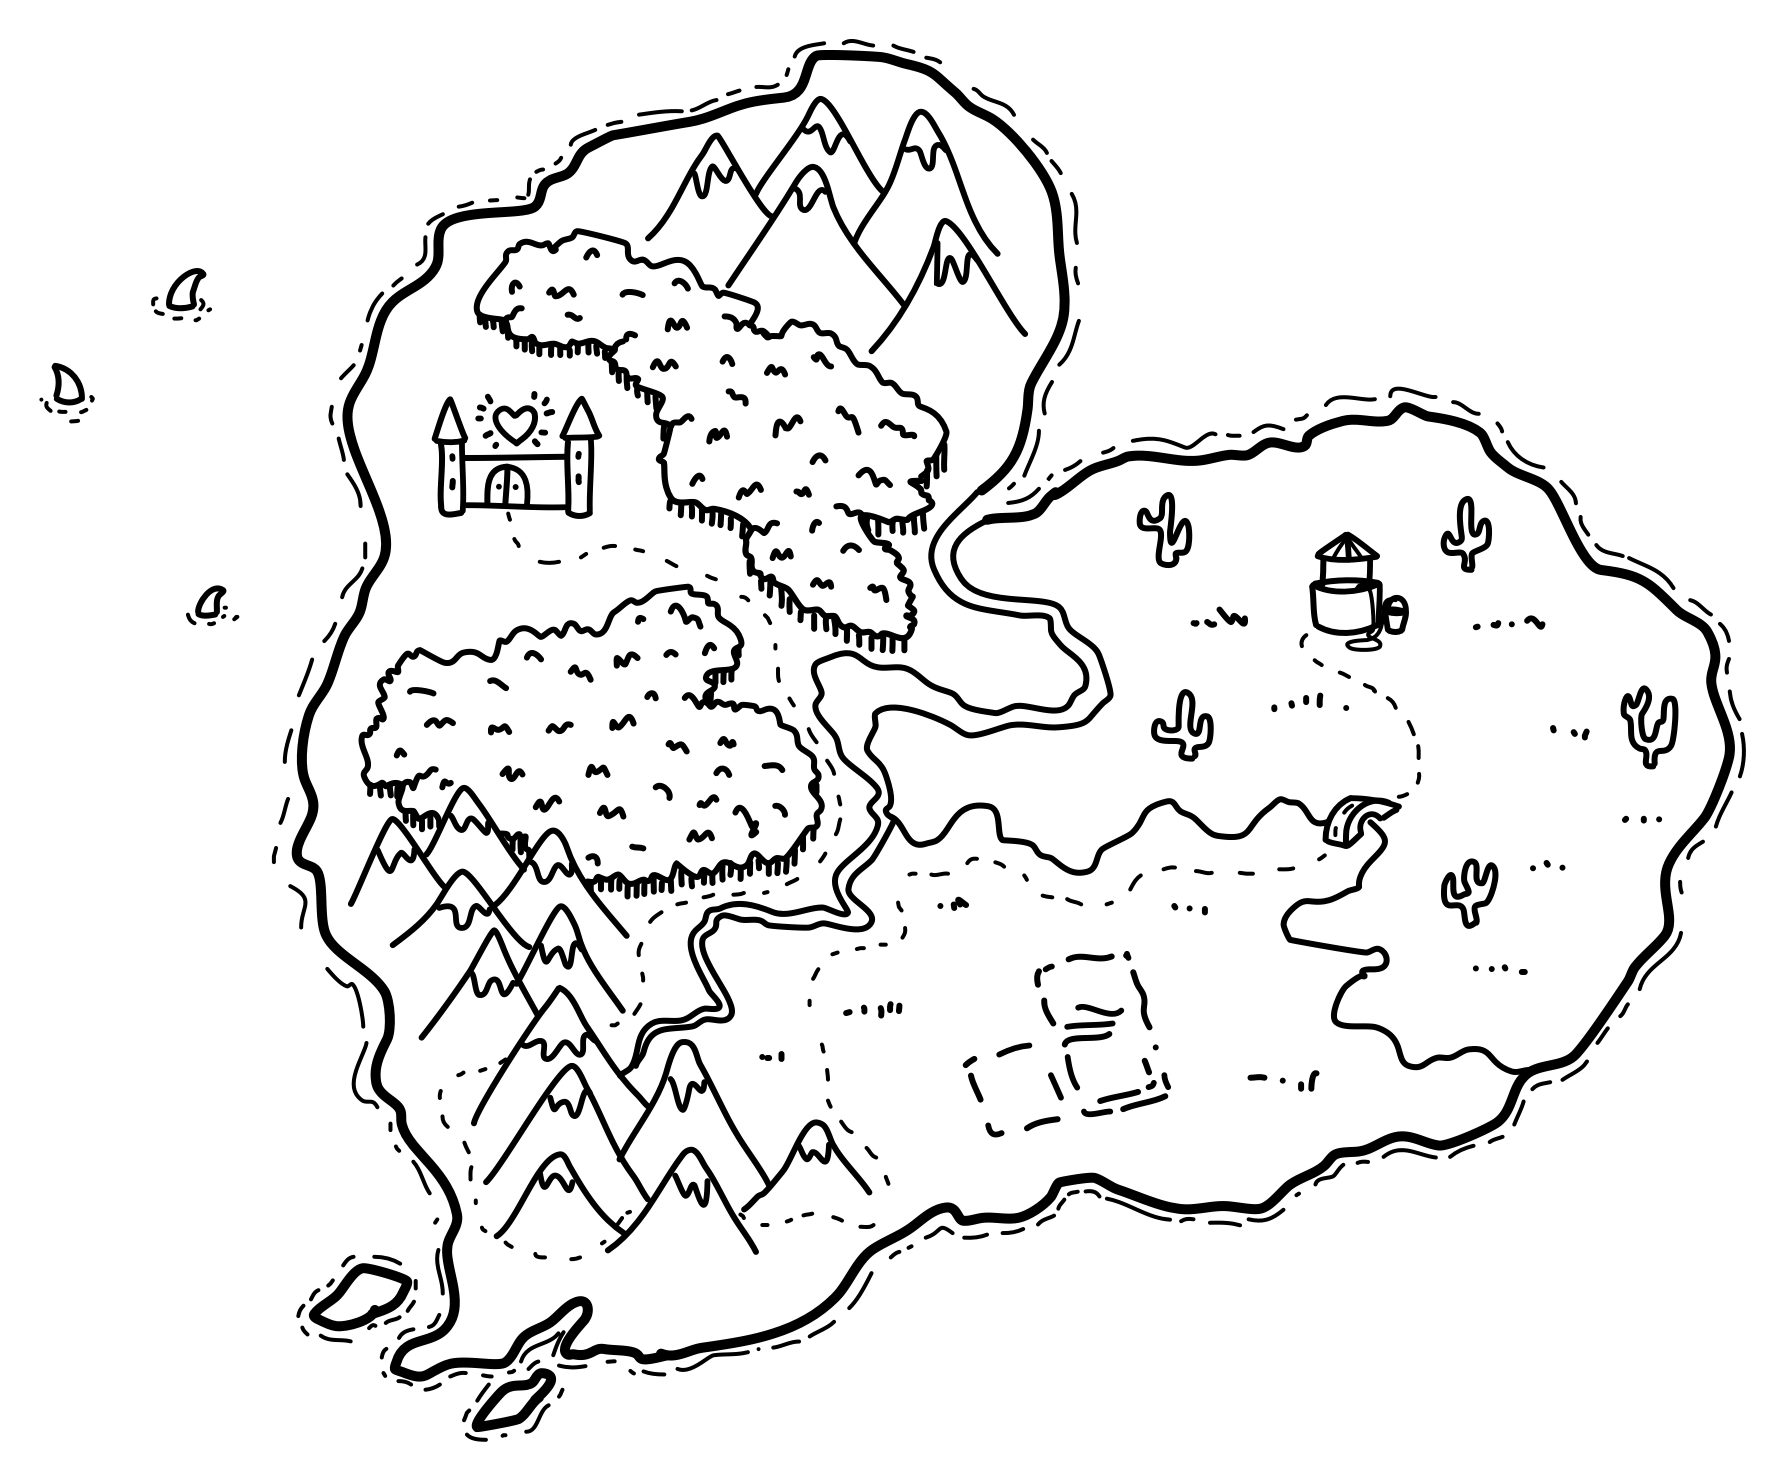 How To Draw Fantasy Maps Super Easy In Shadowdraw